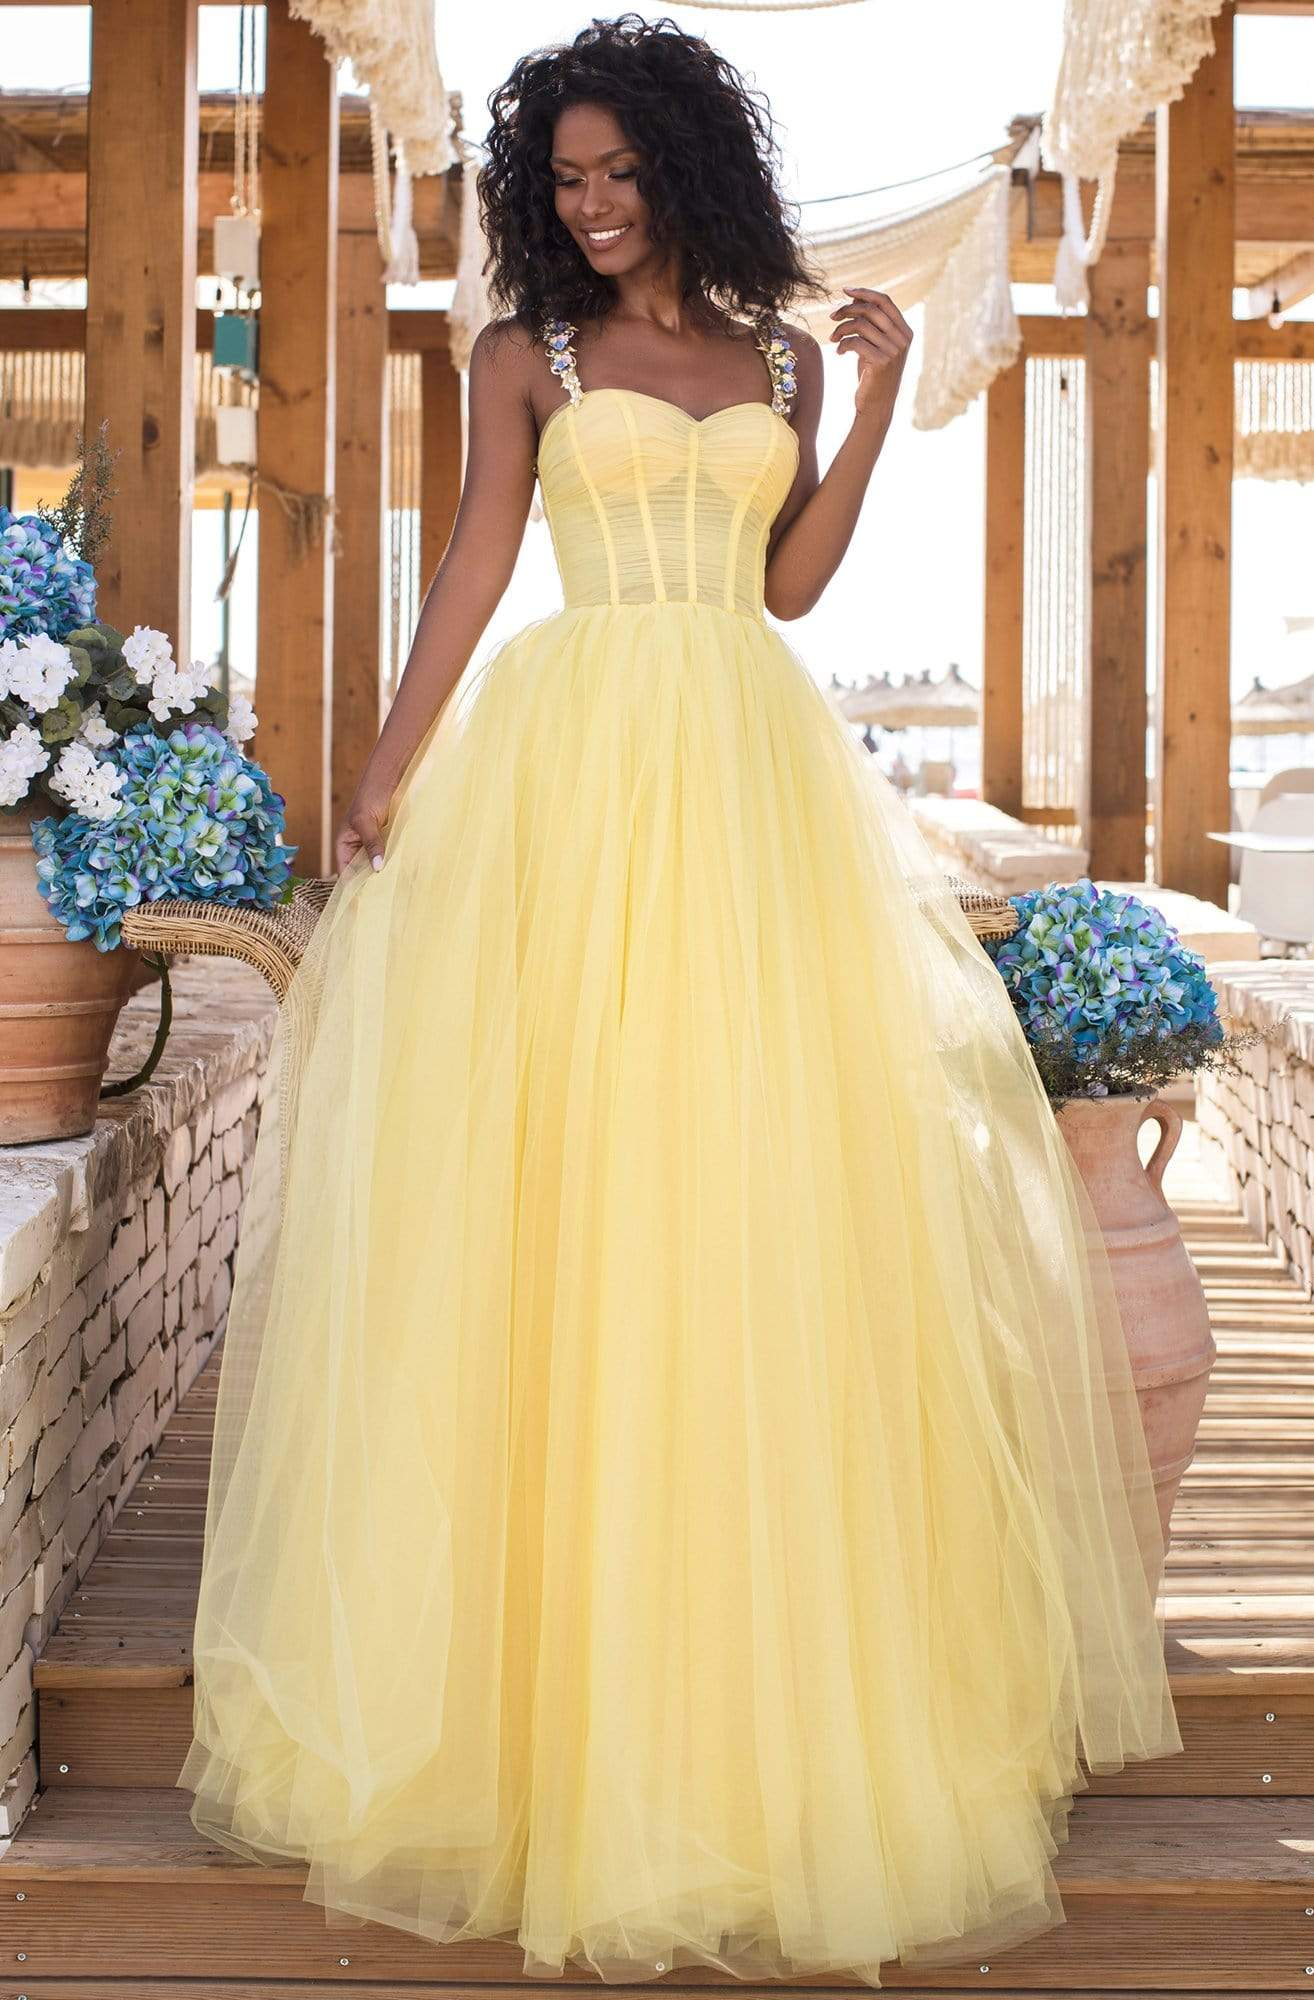 Tarik Ediz - 50619 Floral Ornate Strapped Tulle A-Line Gown Prom Dresses 0 / Yellow